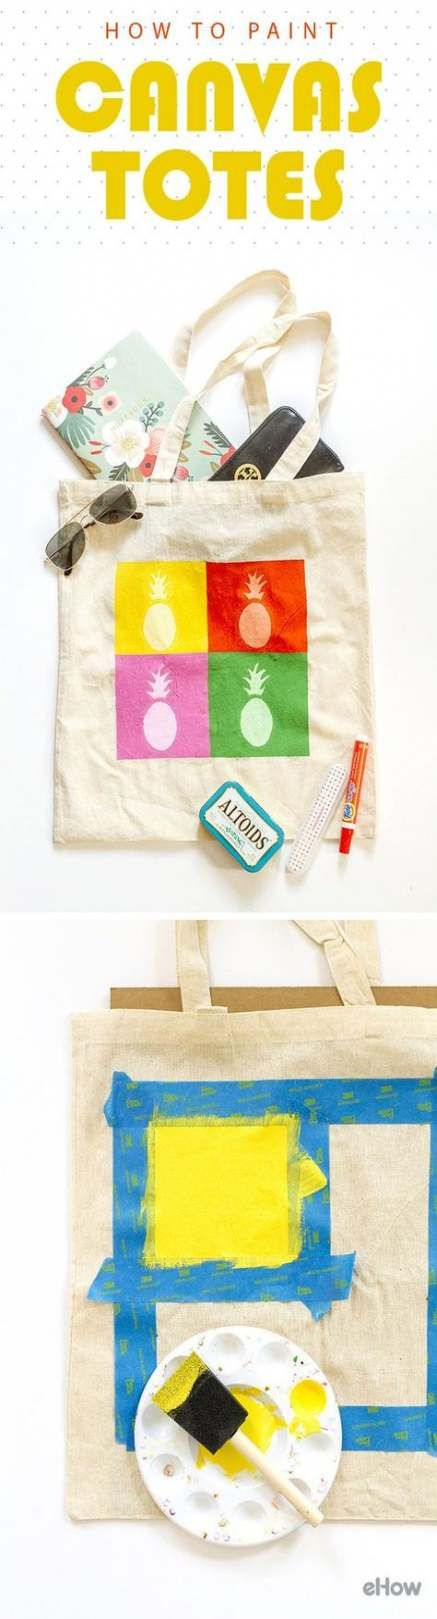 55 Ideas Painting Fabric Canvas Tote Bags